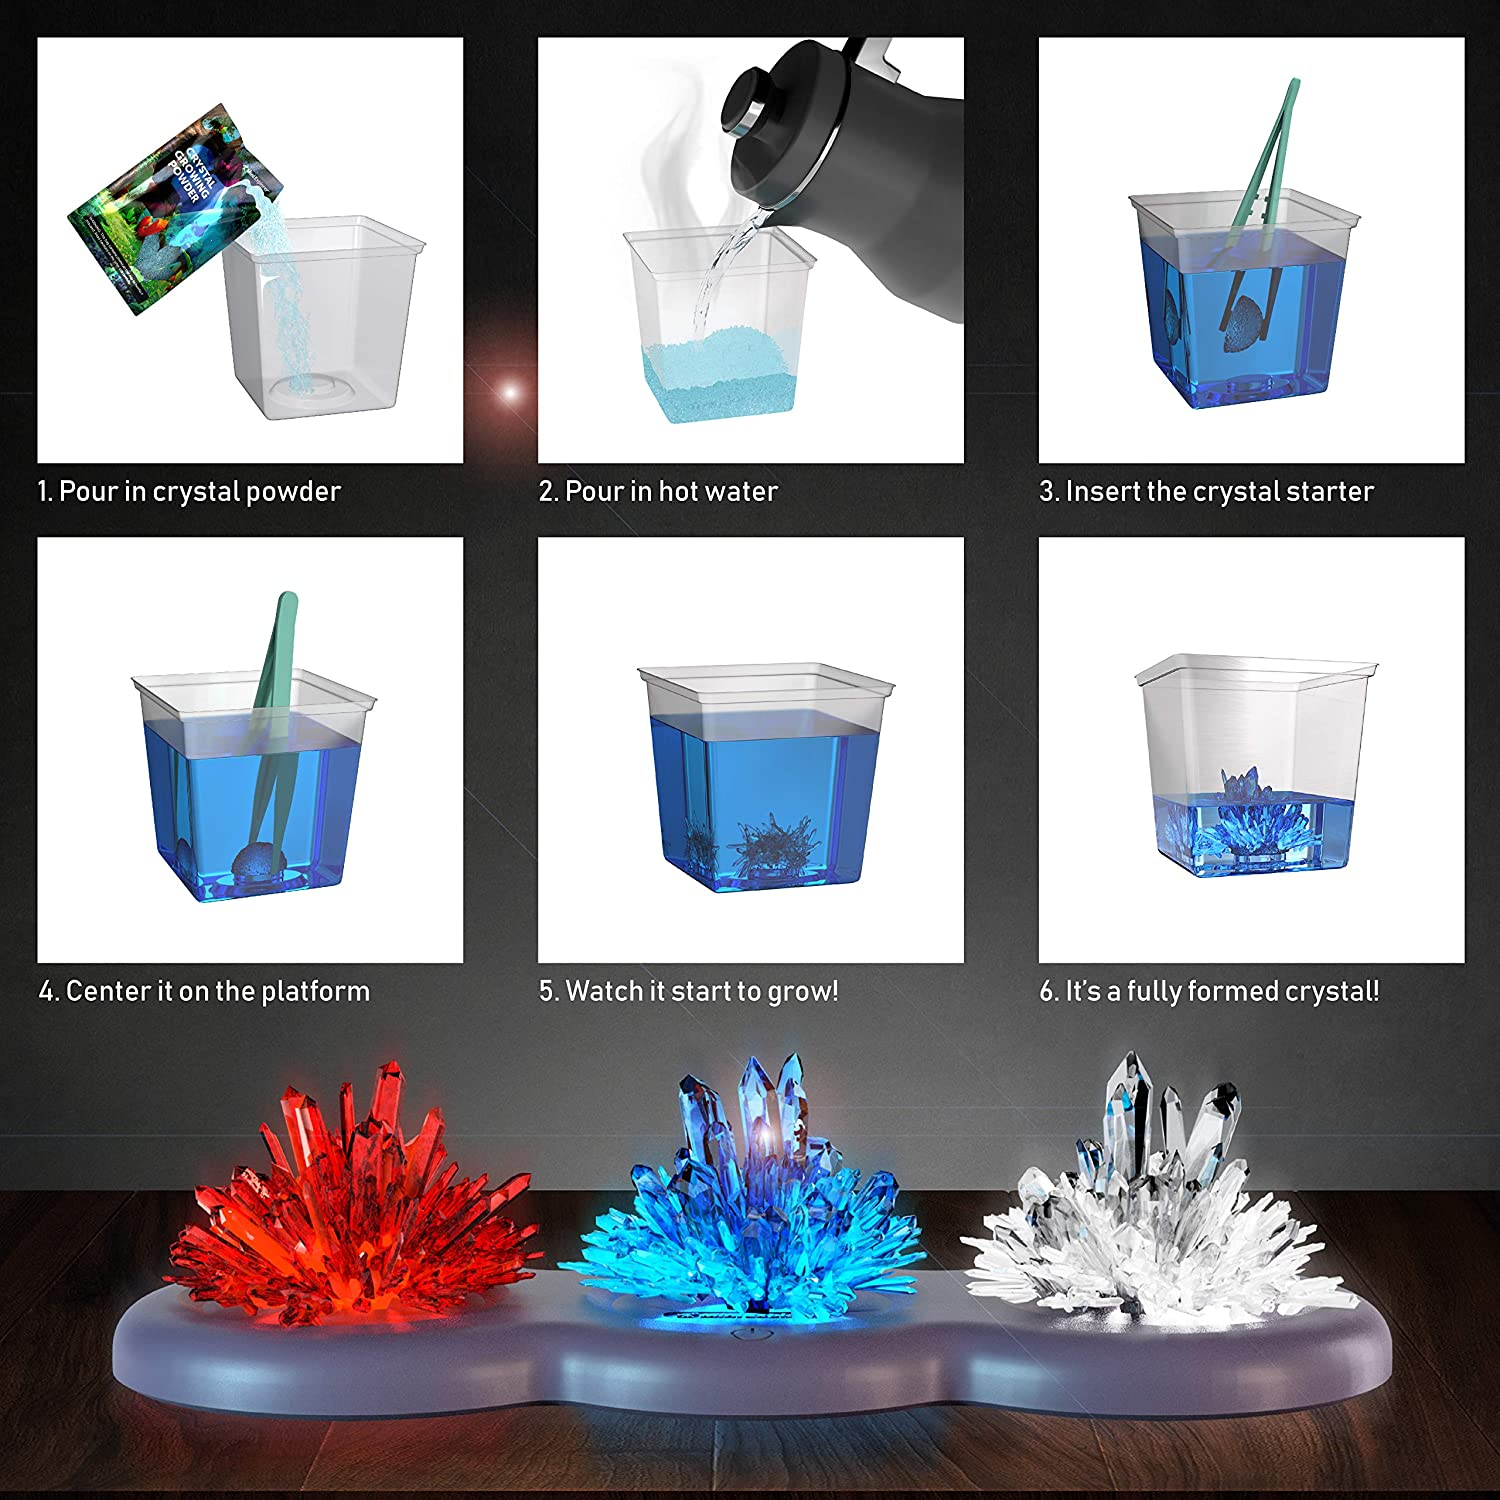 Light-up Crystal Growing Kit for Kids - Grow Your Own Crystals and Make  Them Glow : Great Science Experiments Gifts for Kids, Boys & Girls - STEM  Toys